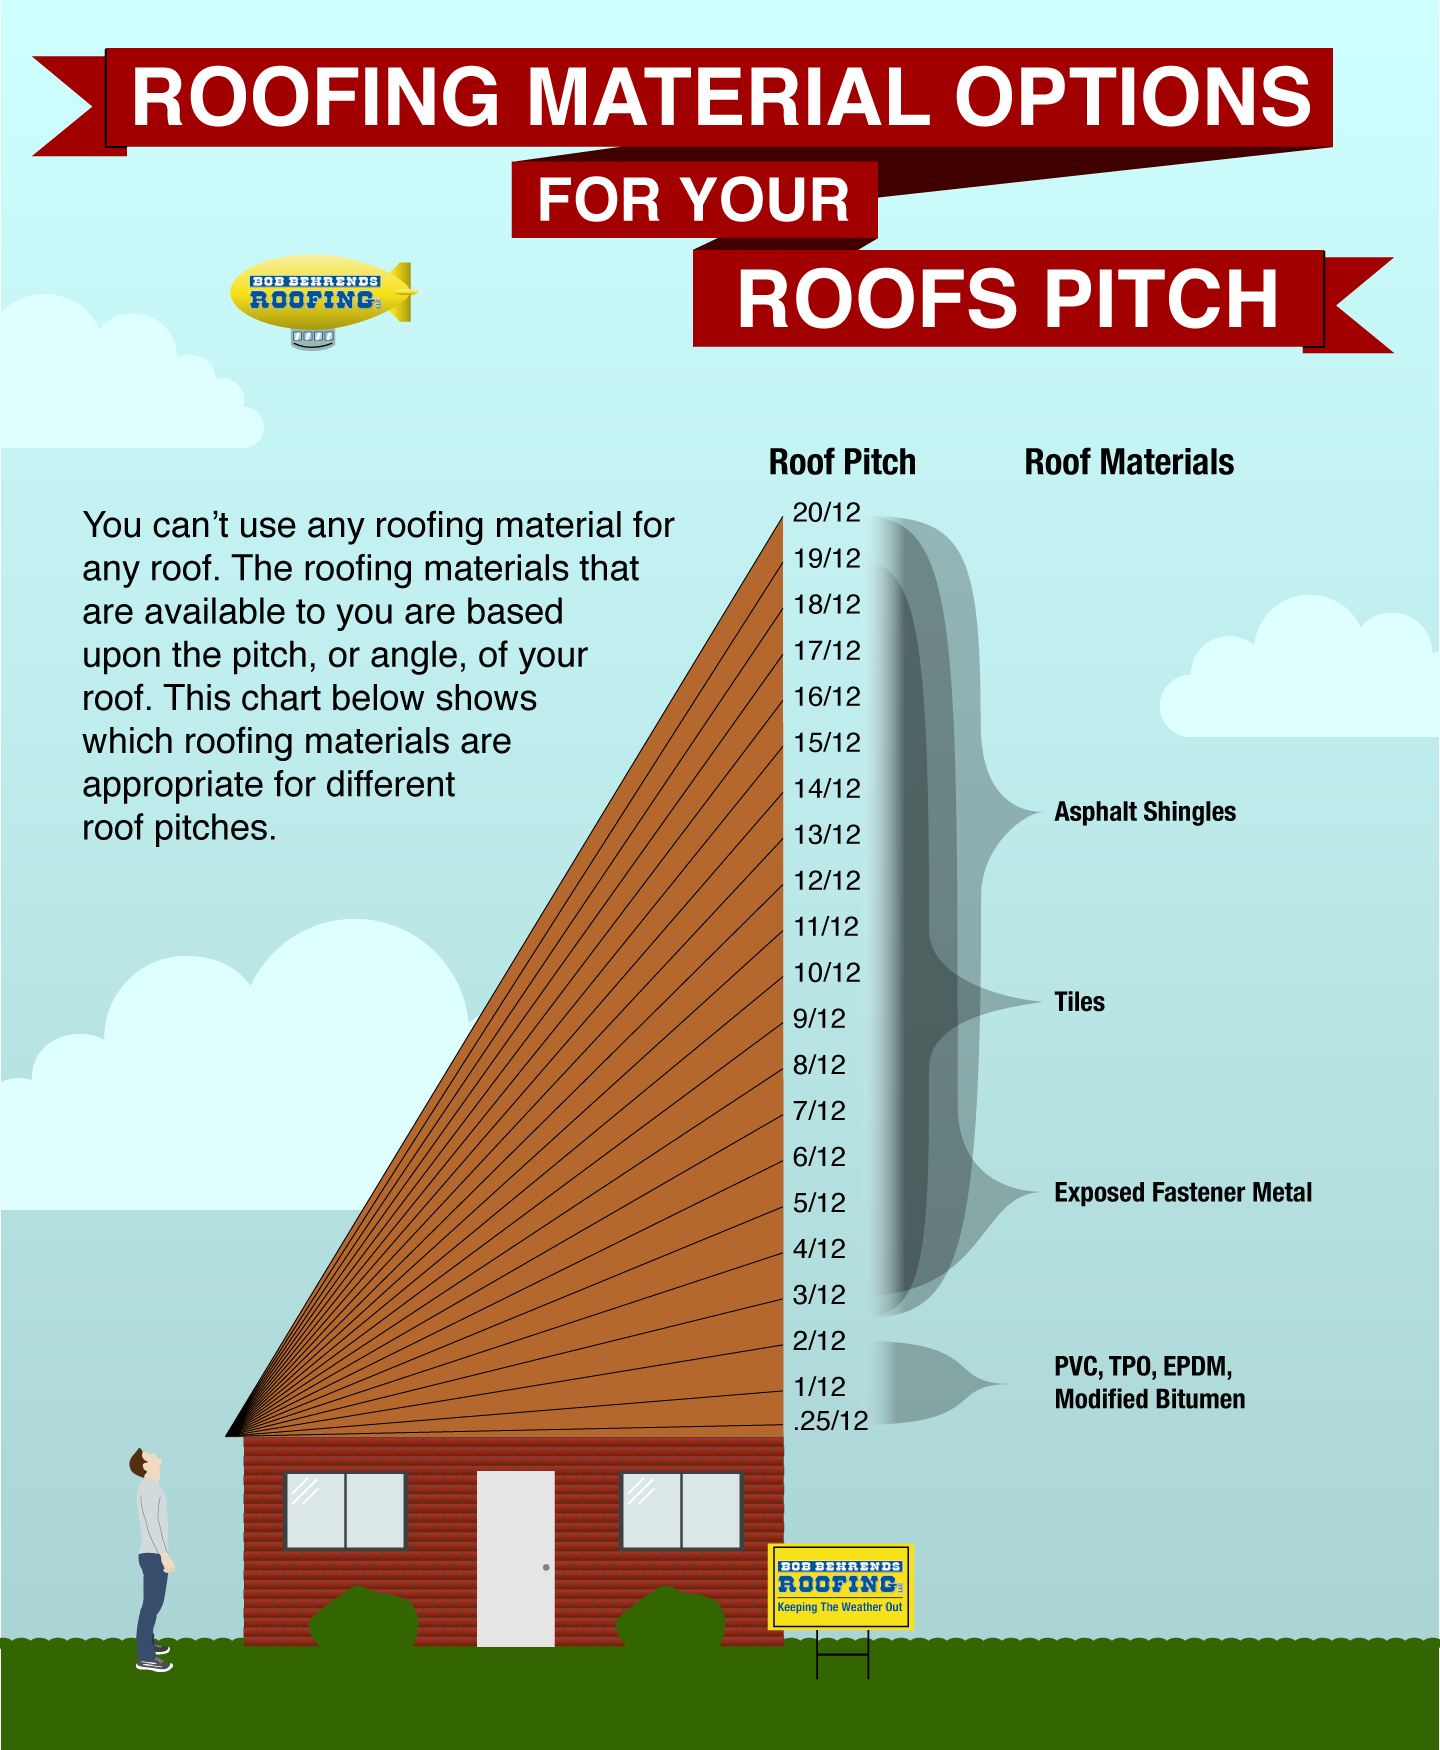 chart showing roofing material options based upon the pitch of a roof